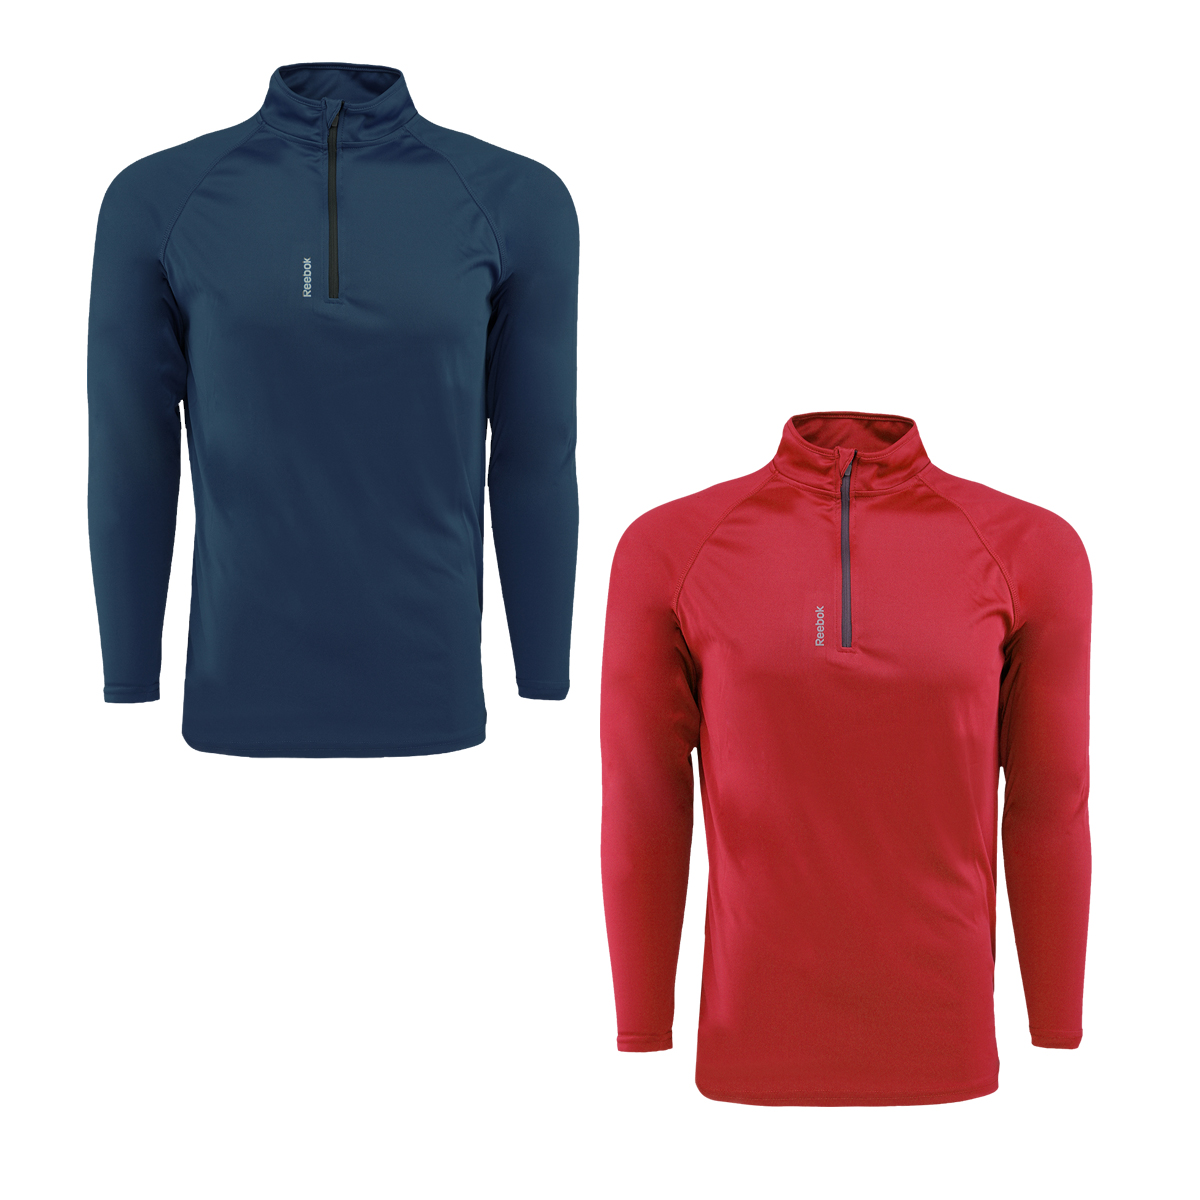 2-Pack Reebok Men's Play Dry 1/4 Zip Jacket